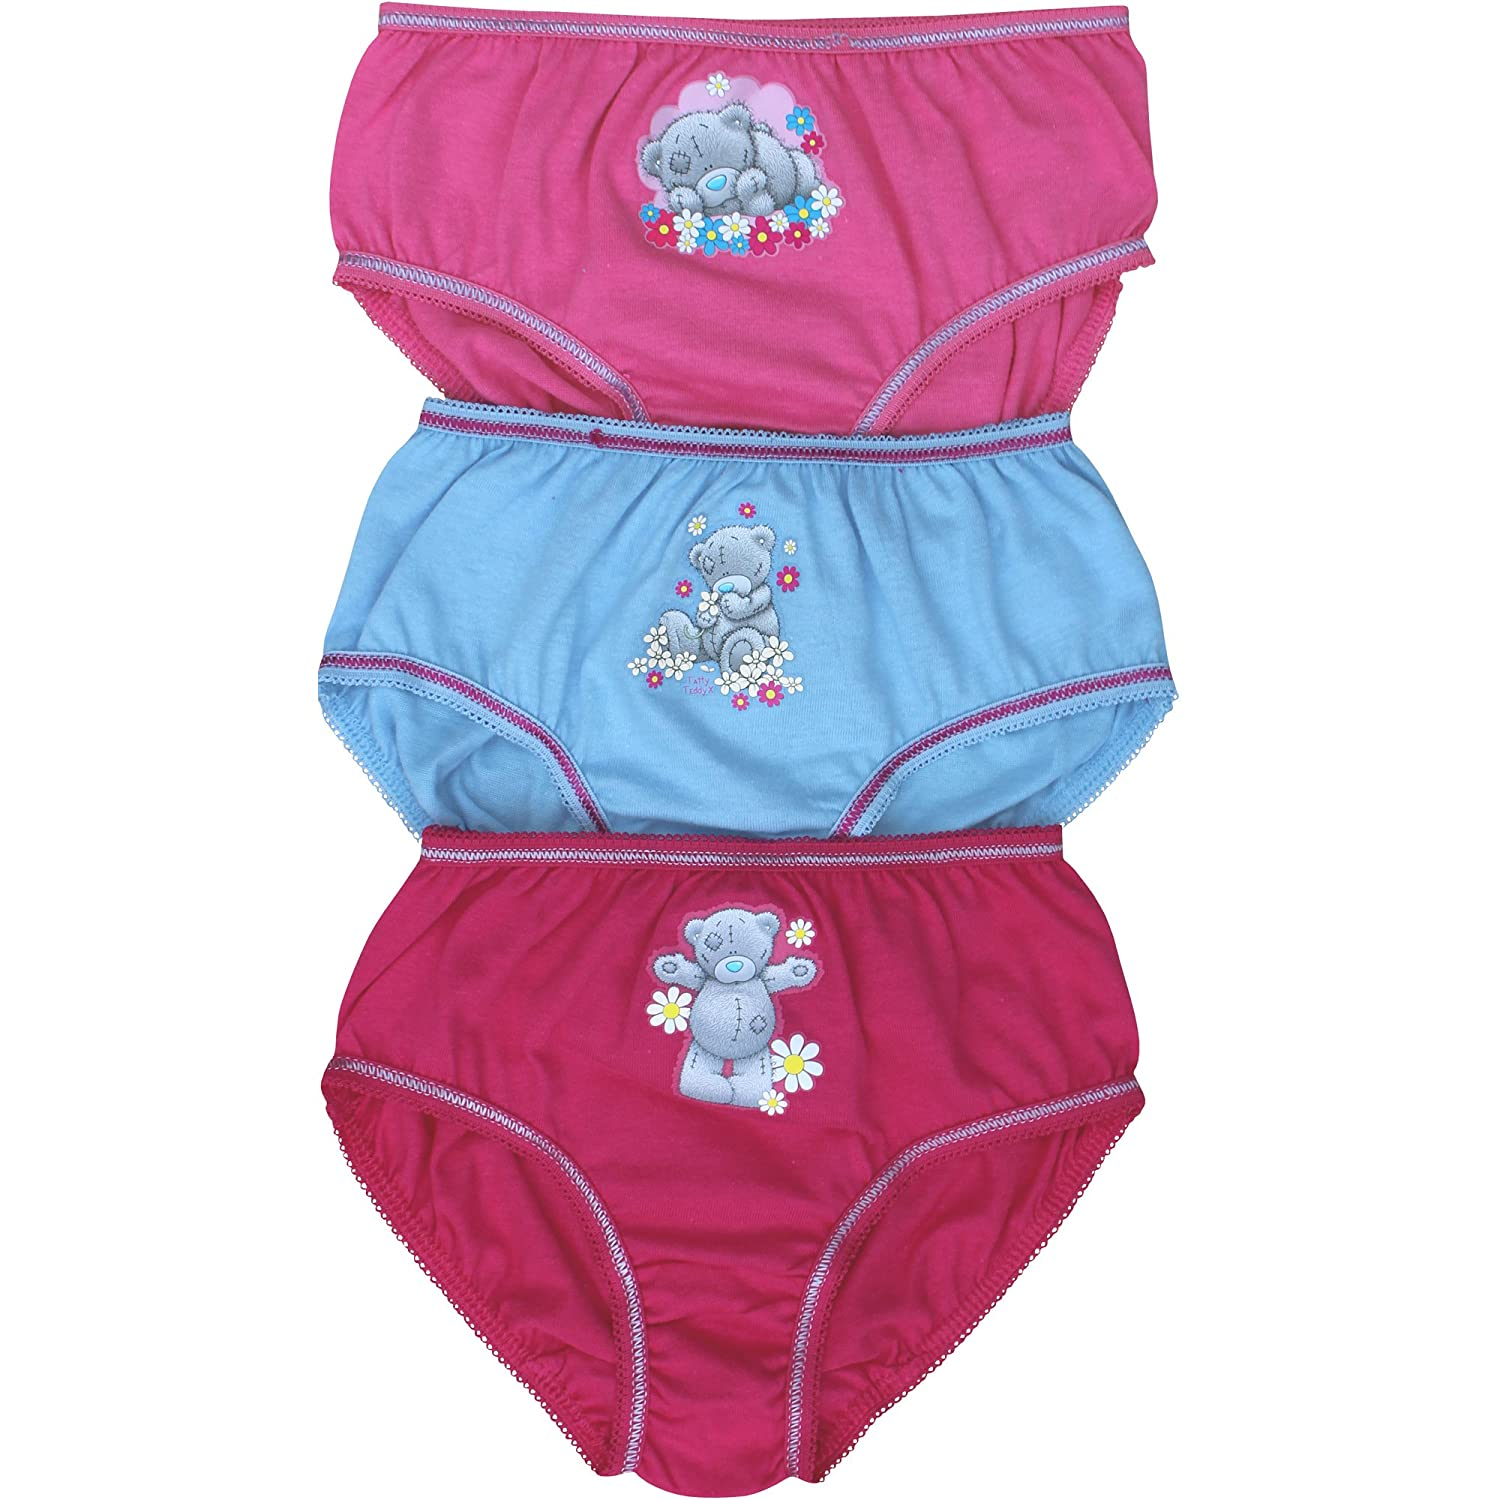 Tatty Teddy Girl's Bear Hipster Briefs Pants Set (3 Pair Pack)